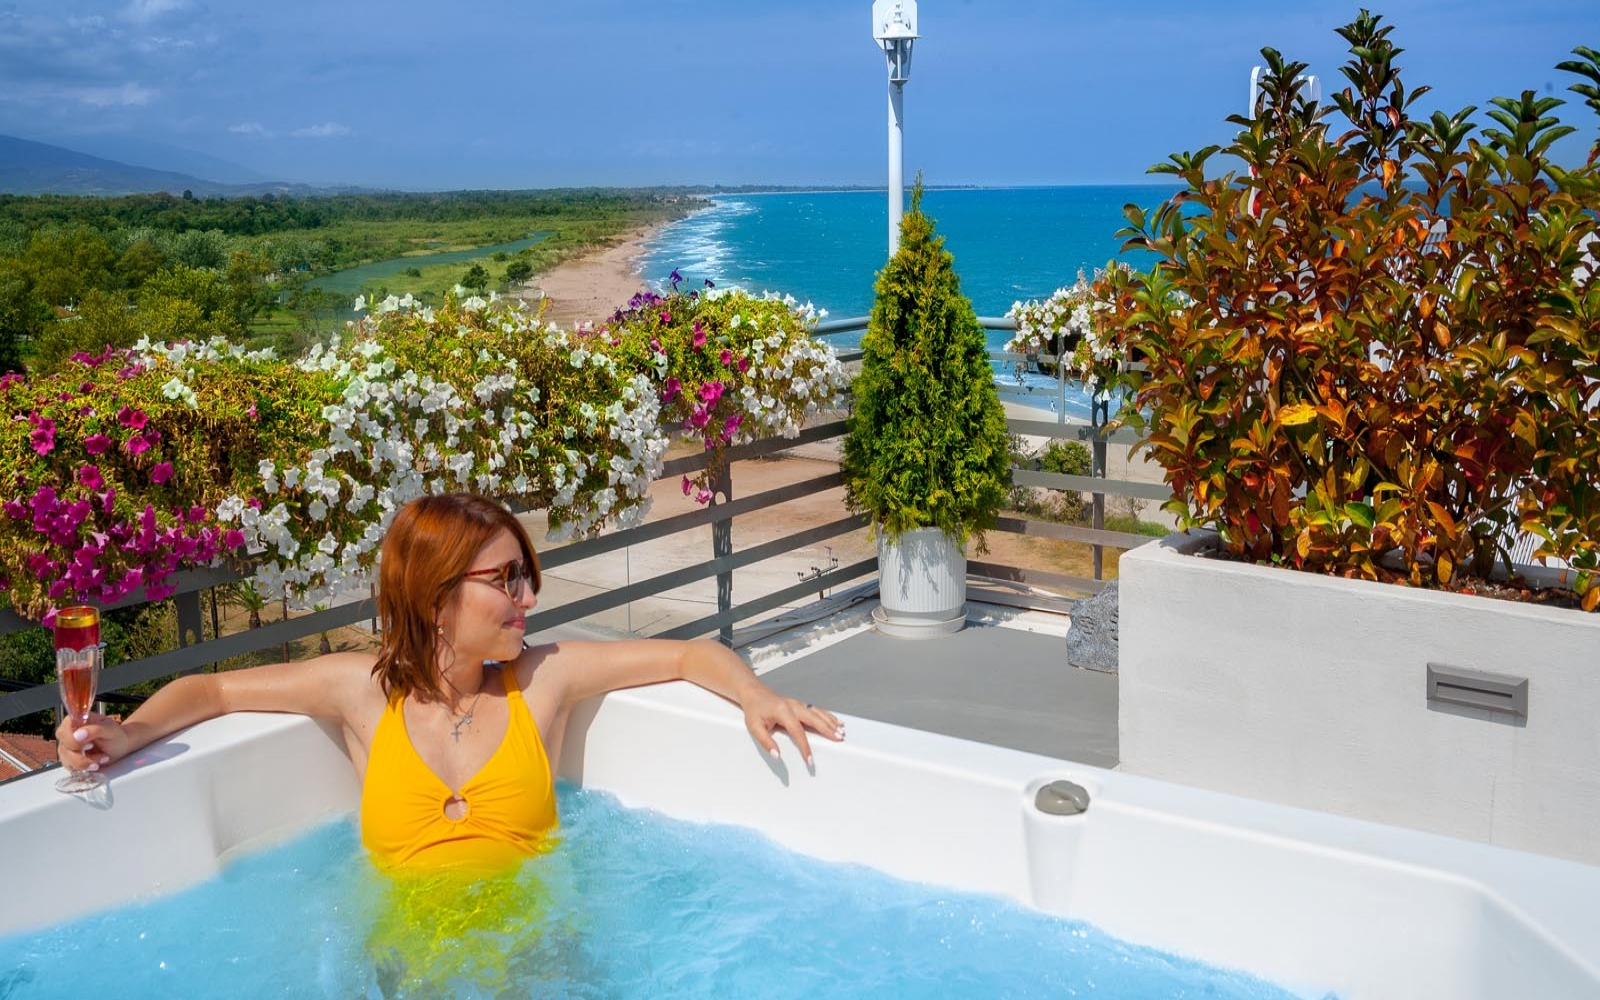 DREAM SUITE - Panoramic Sea View - Hot Tub - Rooftop Garden - Heated Mini Pool